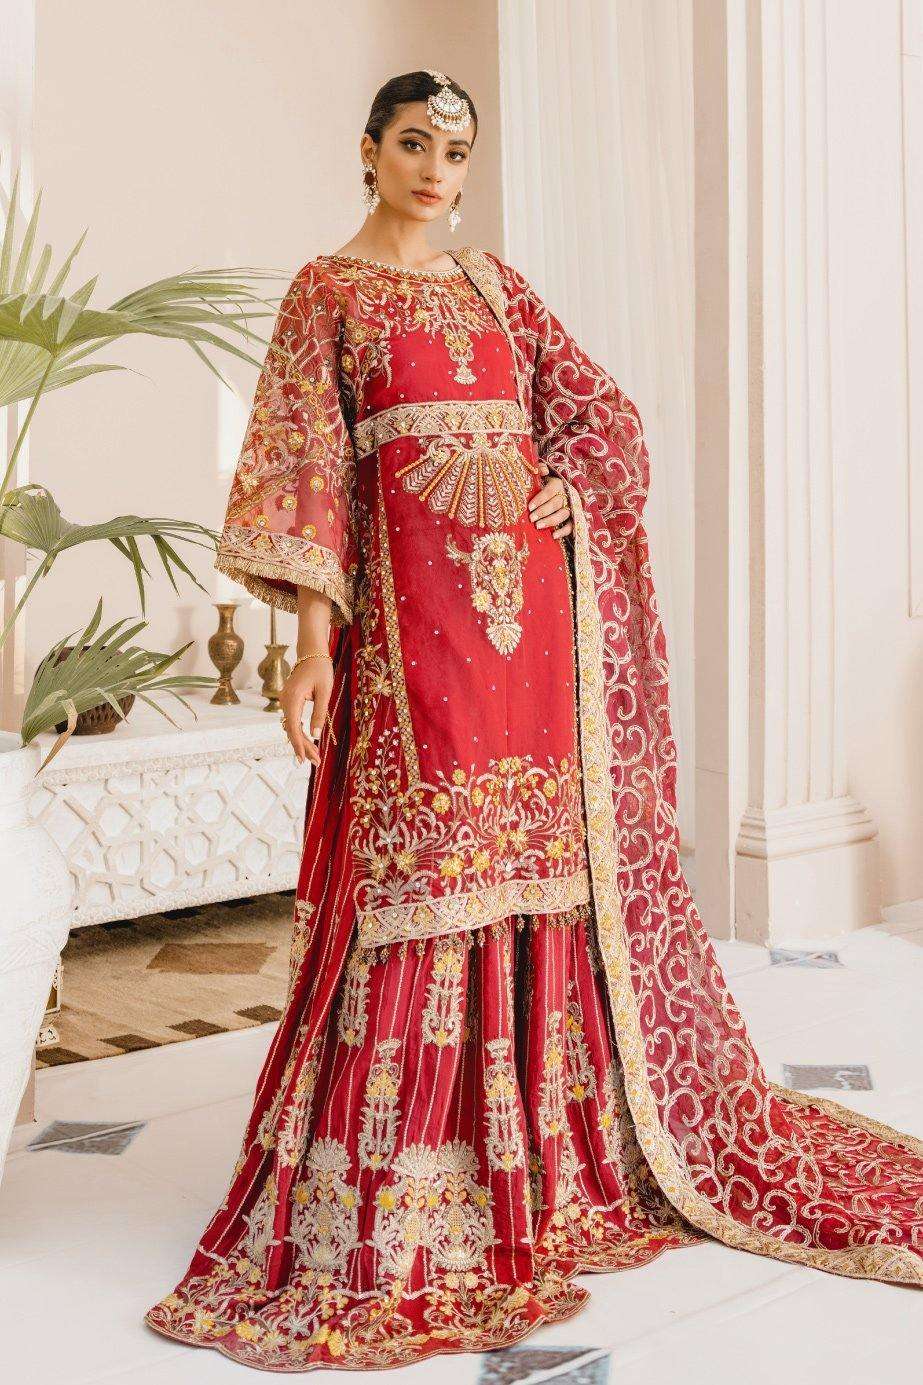 A female model wearing a stunning and beautiful Formal Lehenga and posing for the Photoshoot of Mashq's Formal Wear Collection